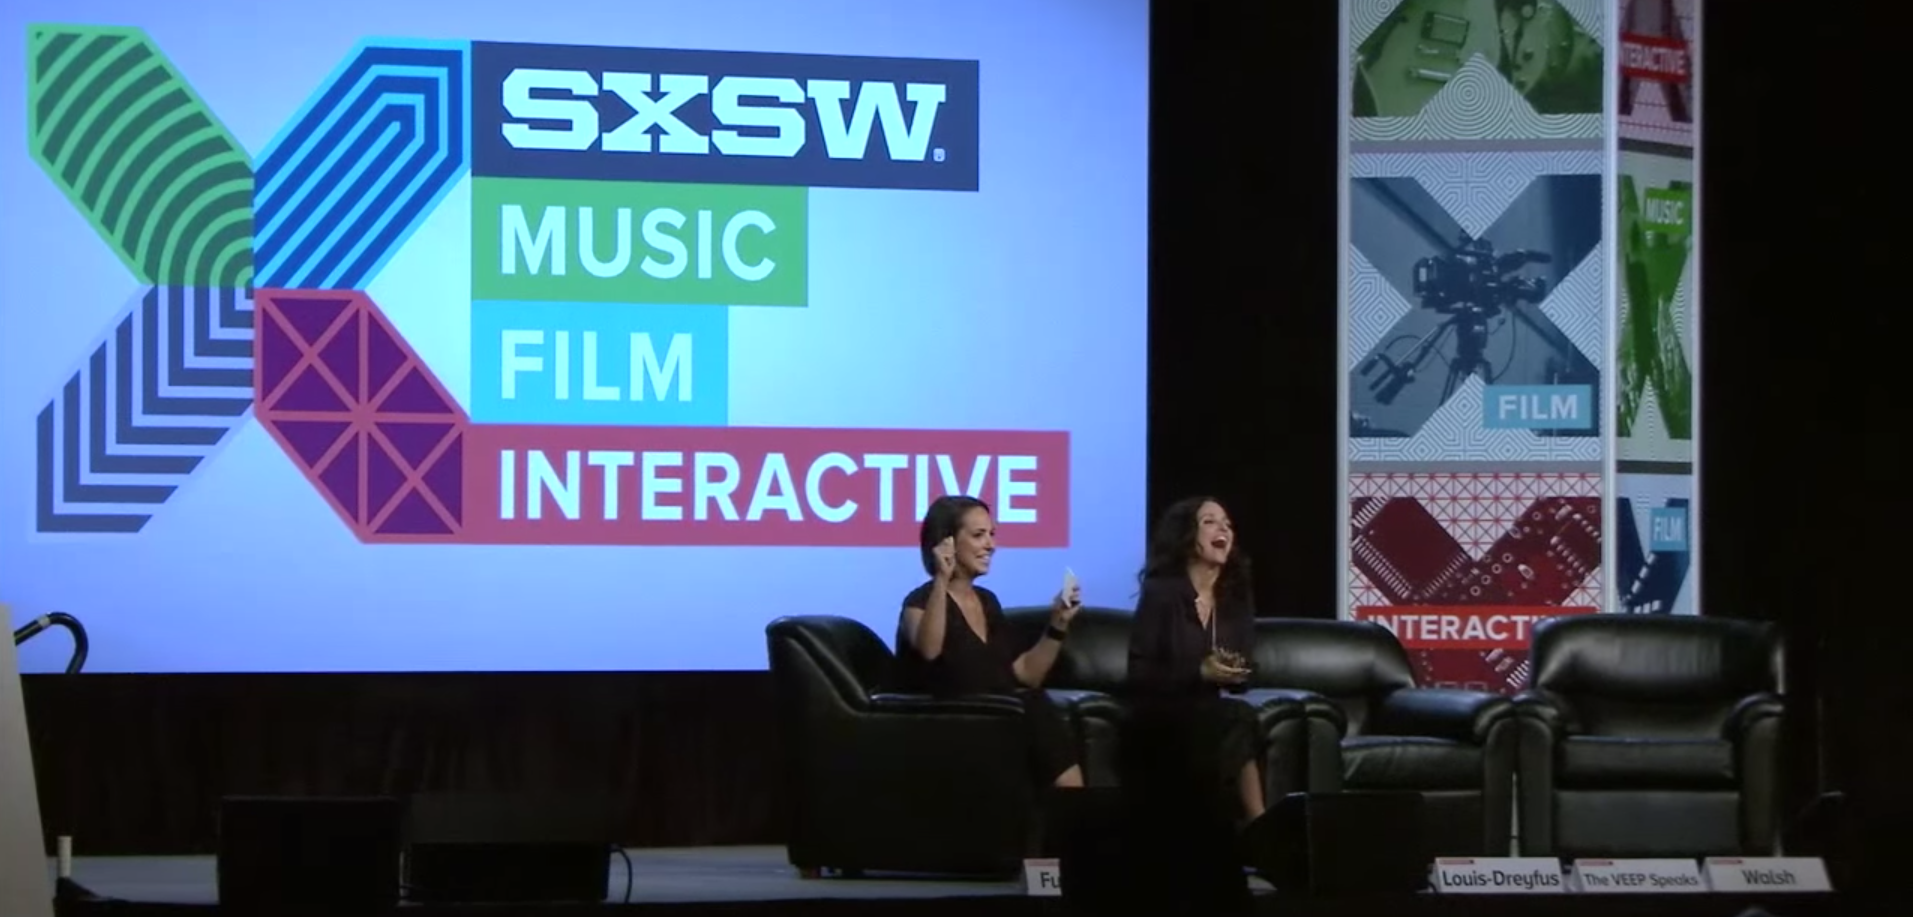 Julia Louis-Dreyfus. Image by: SXSW / YouTube